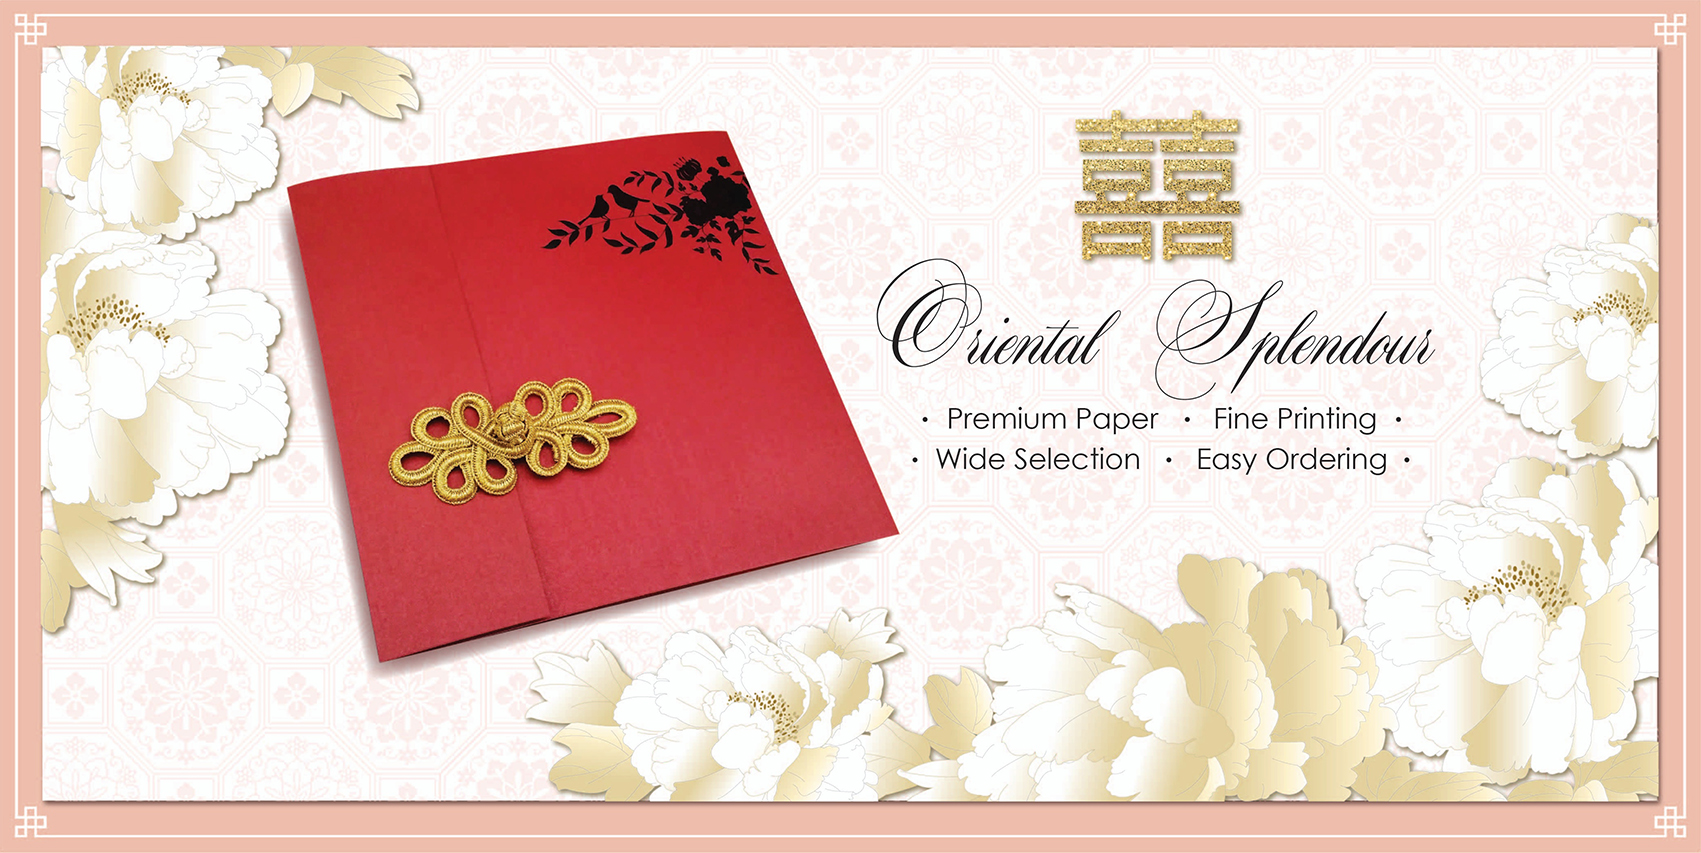 Laser Cut Wedding Invitations by PAPEROSE WEDDING SDN. BHD ...